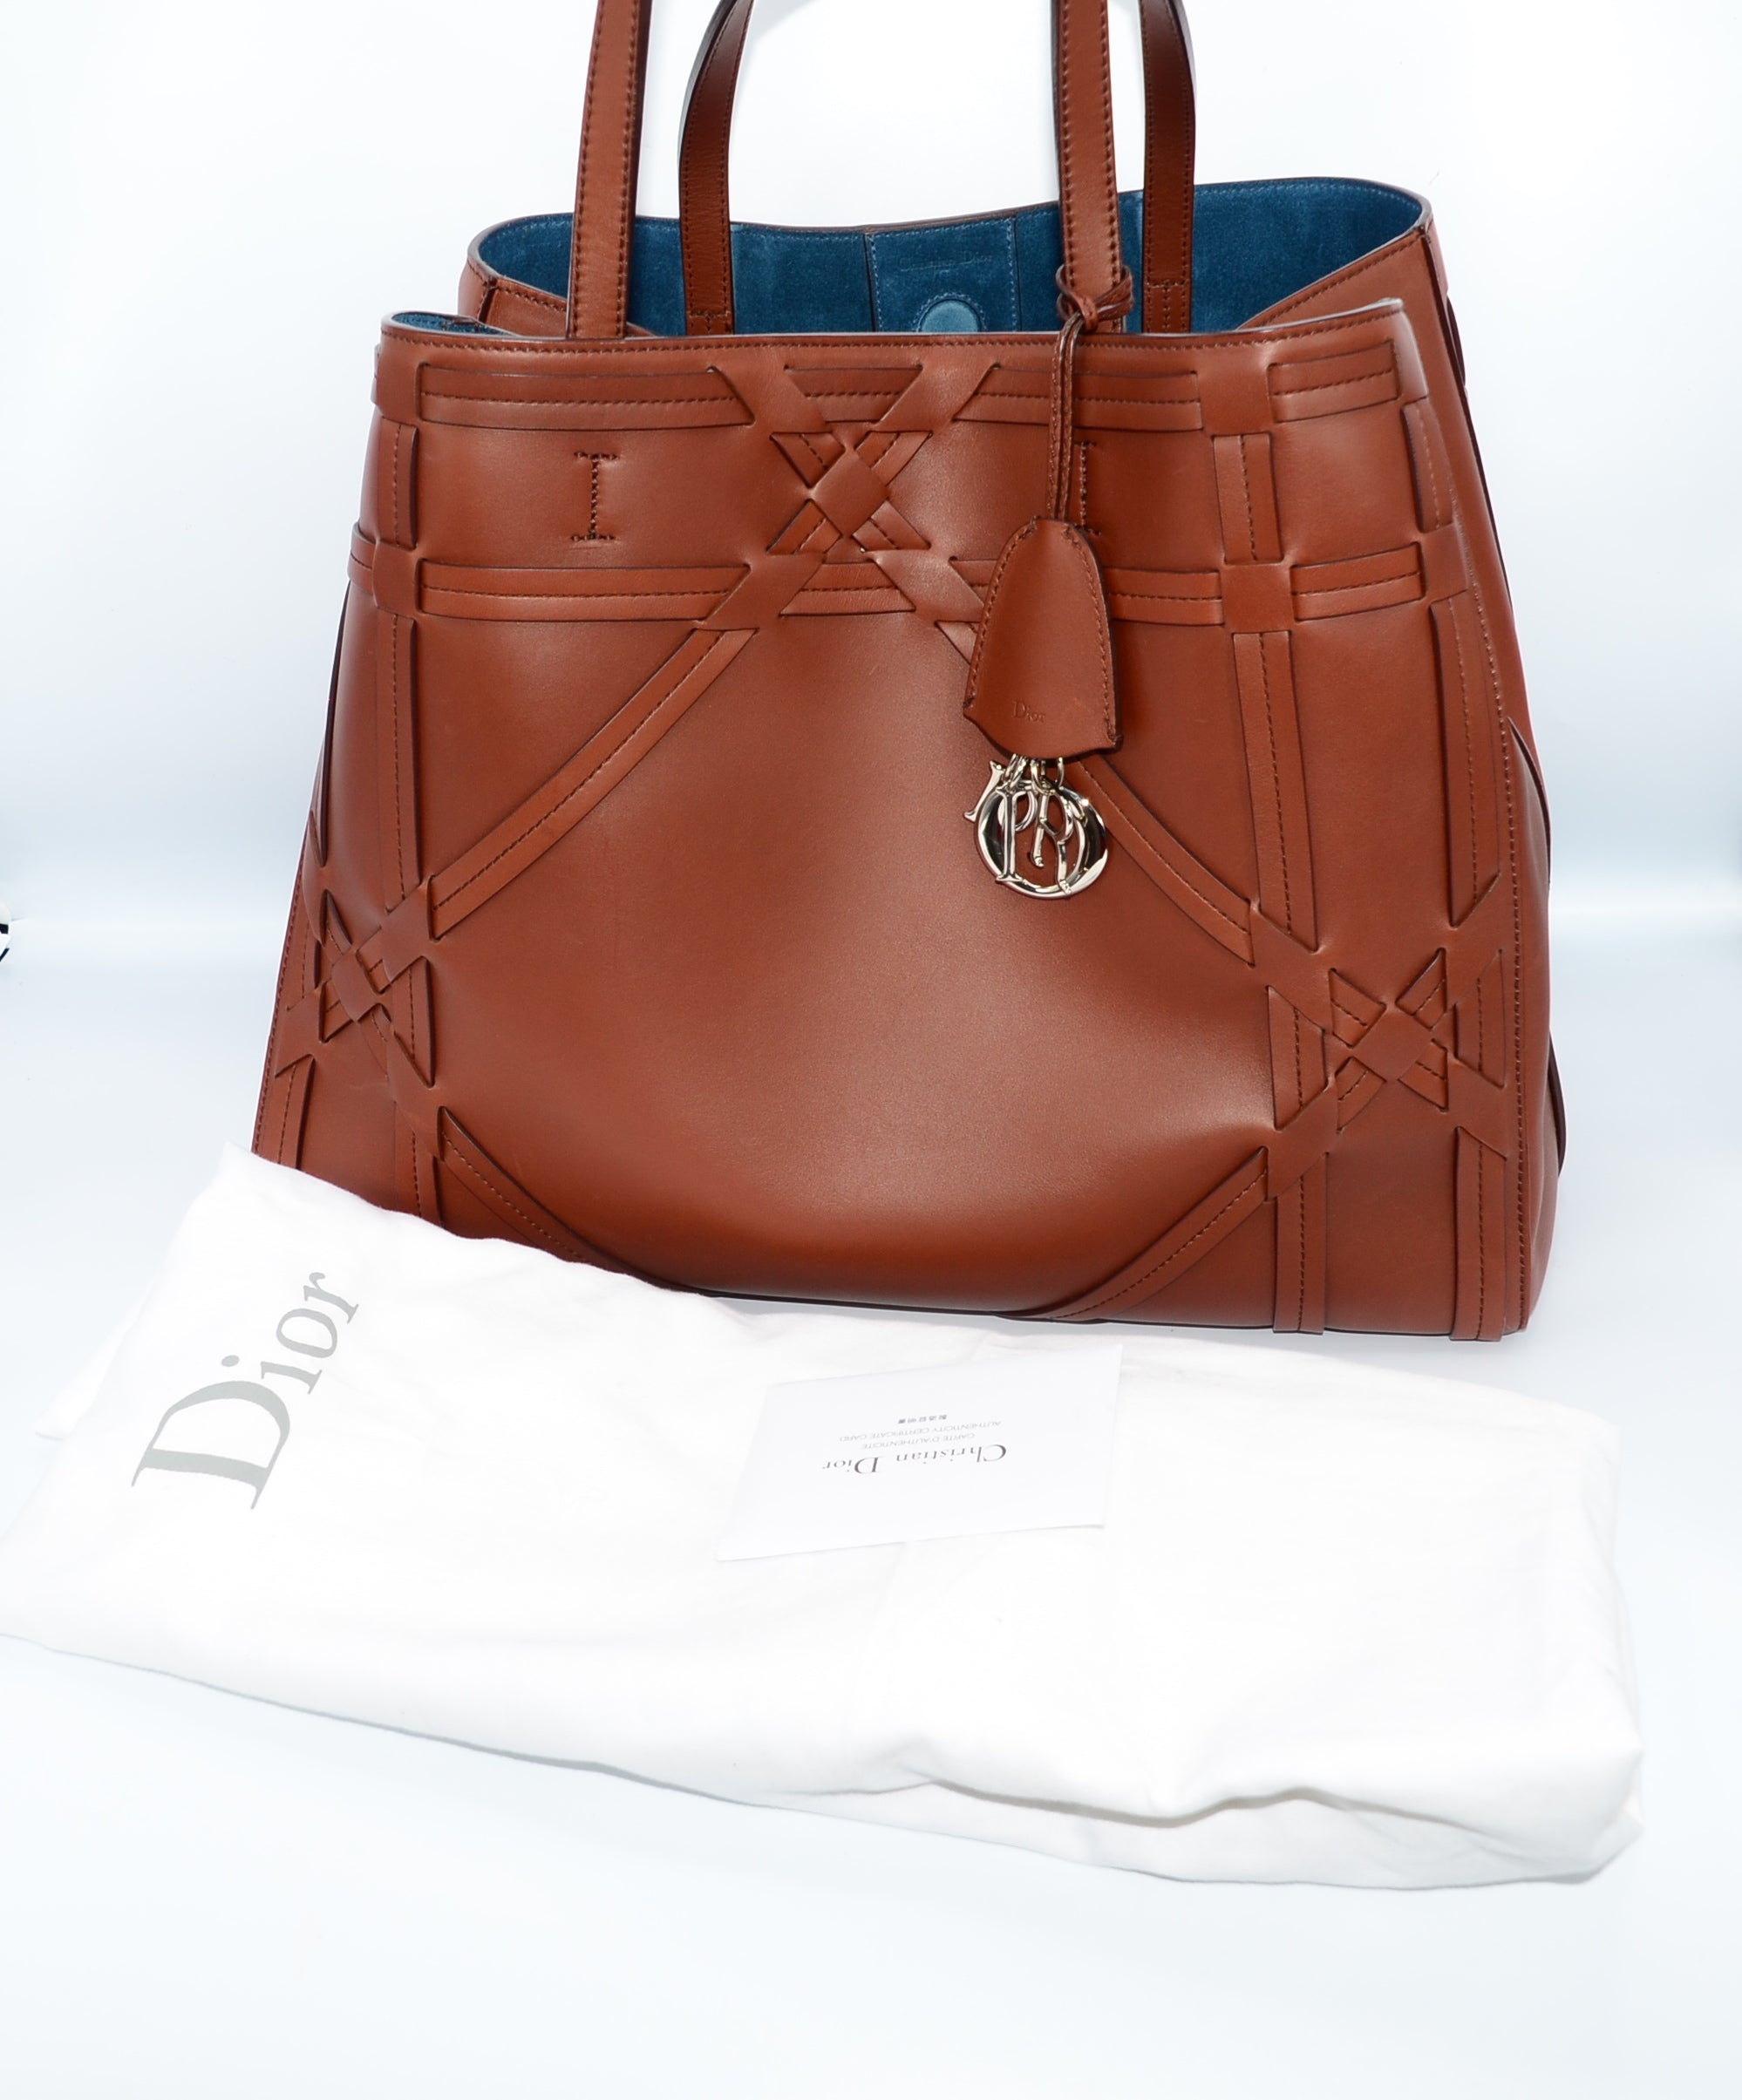 Christian Dior tote bag